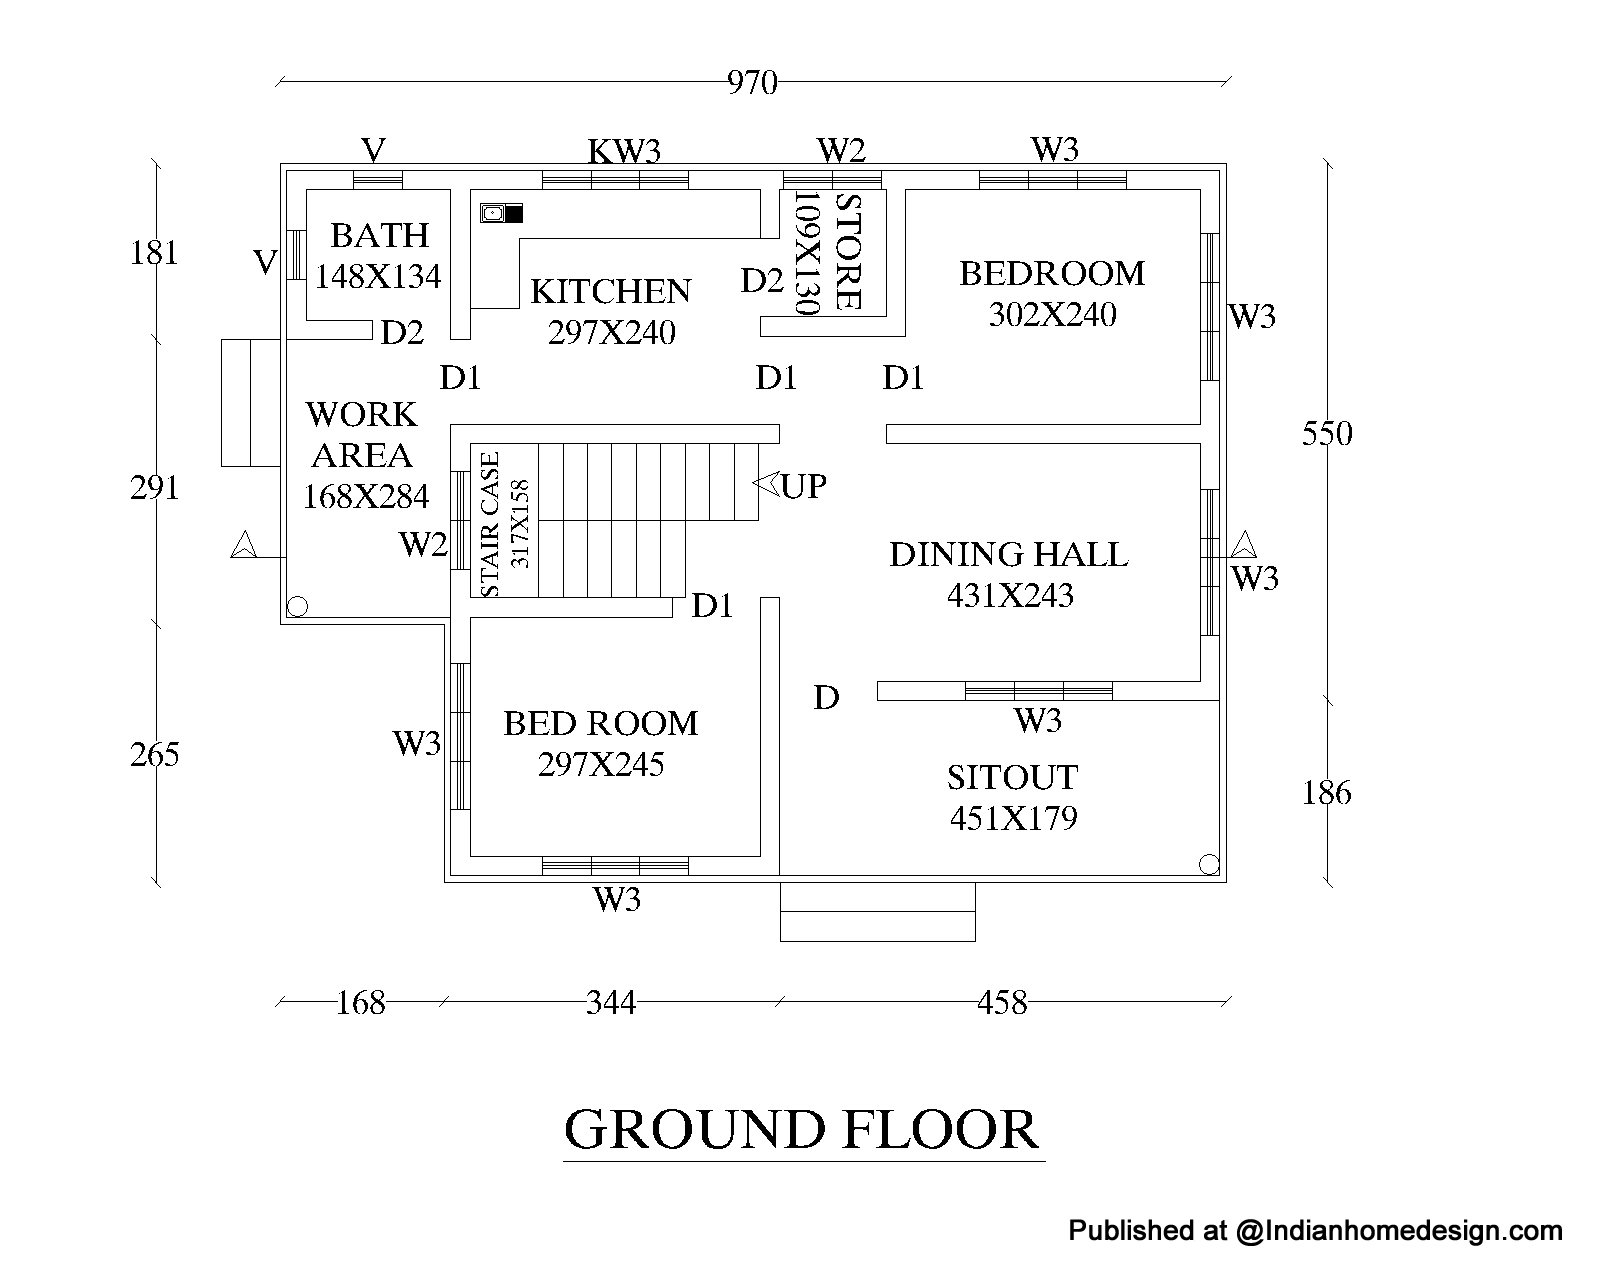 House Floor Plan Templates Free Living Room Designs for Small Spaces